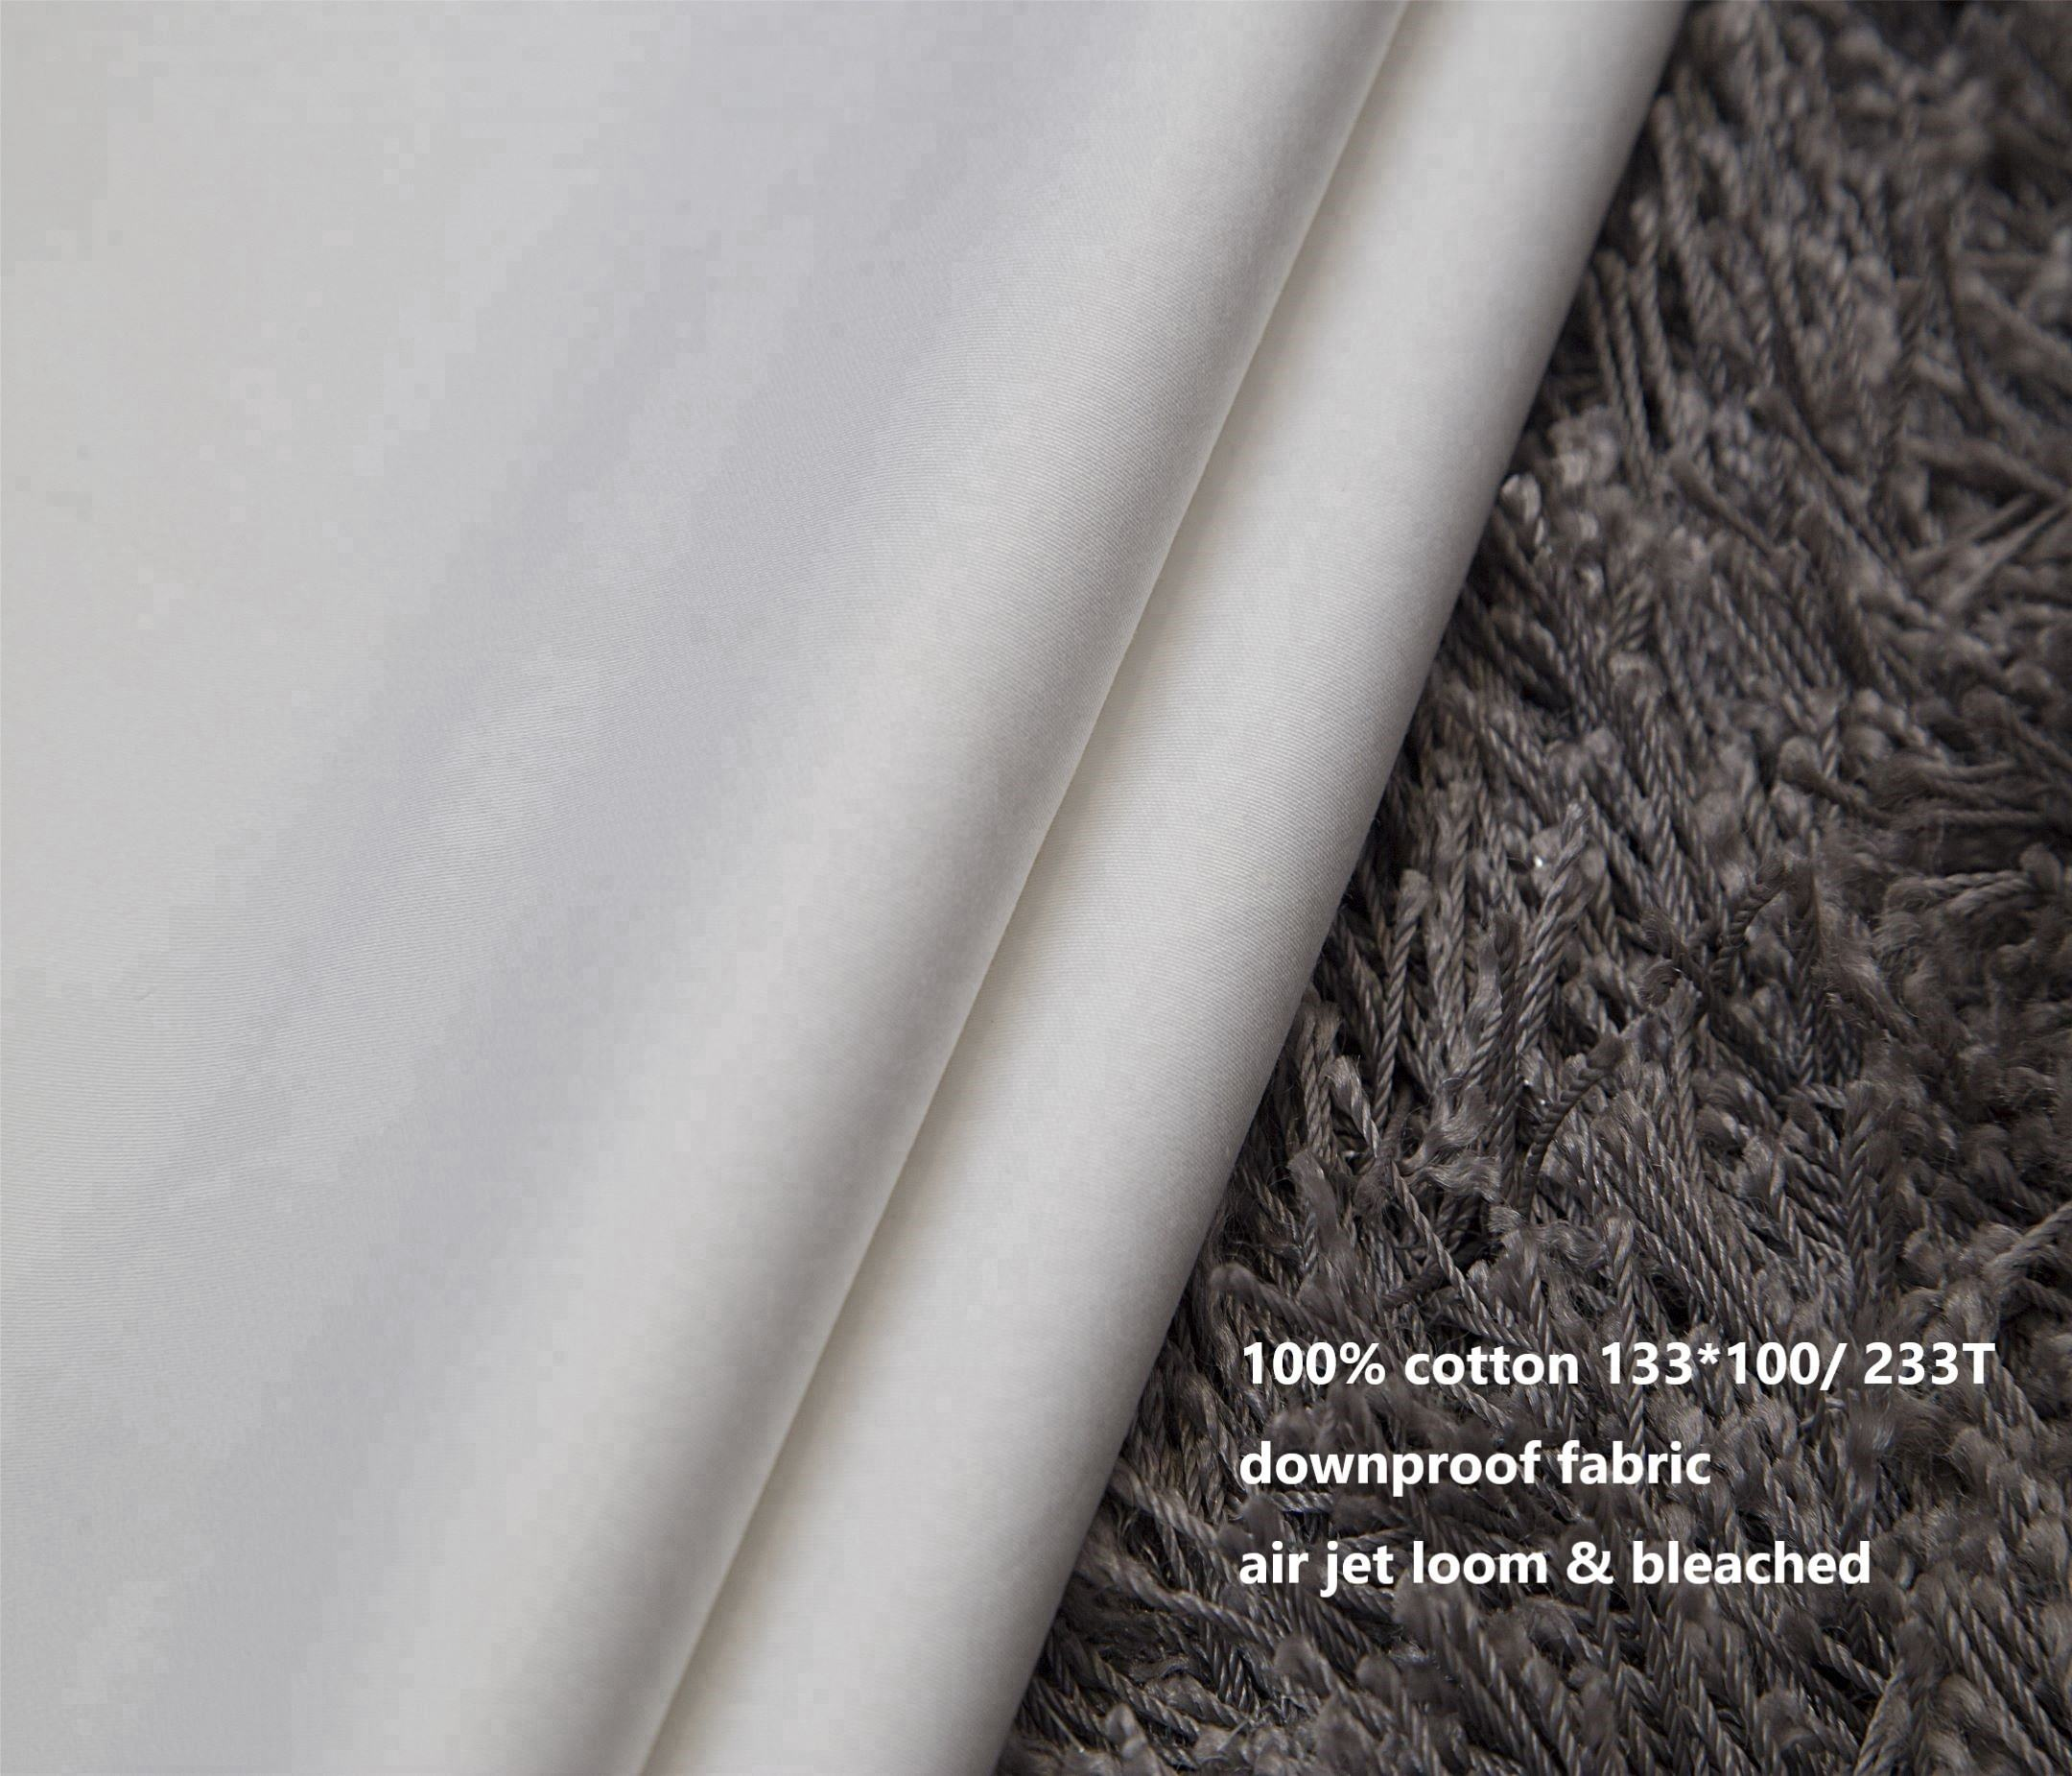 stock 100% cotton white 233T downproof fabric with air jet loom in roll